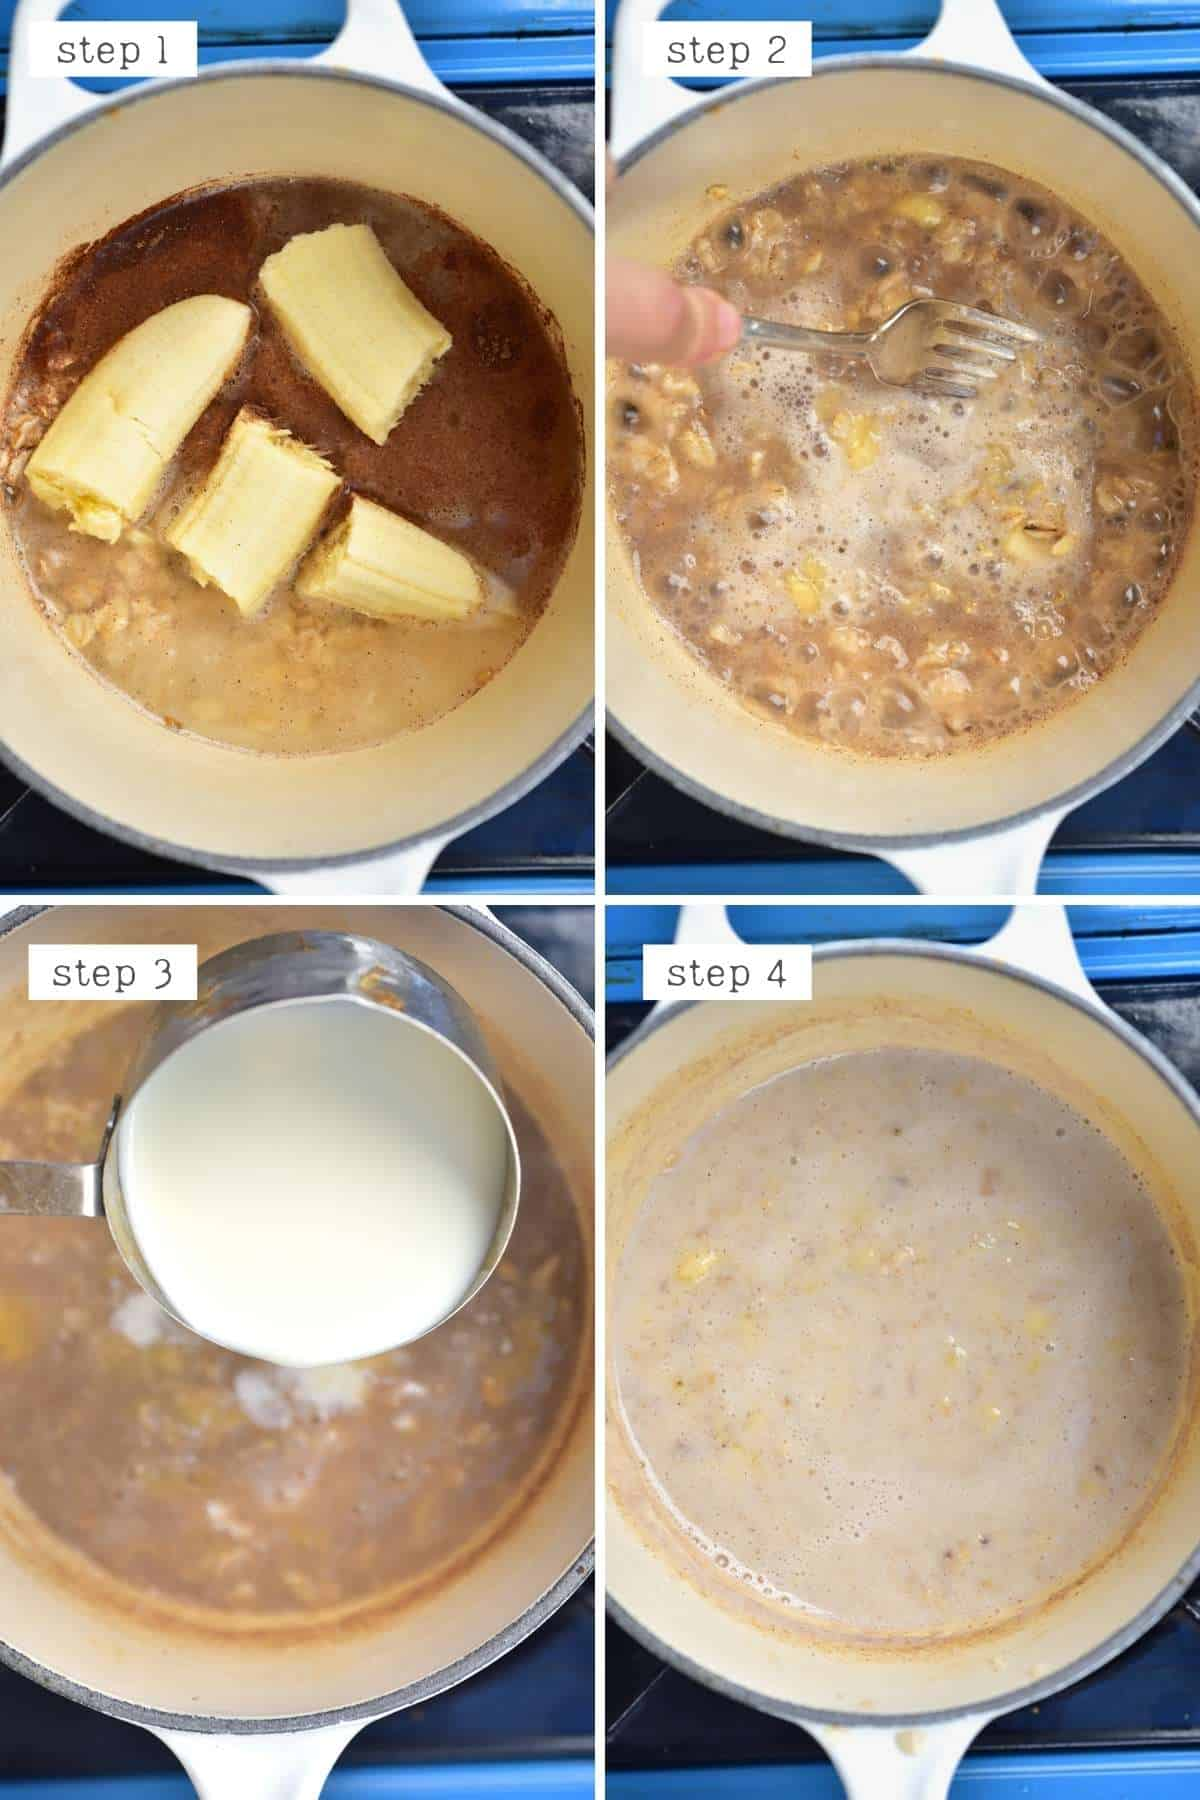 Steps for making banana oatmeal